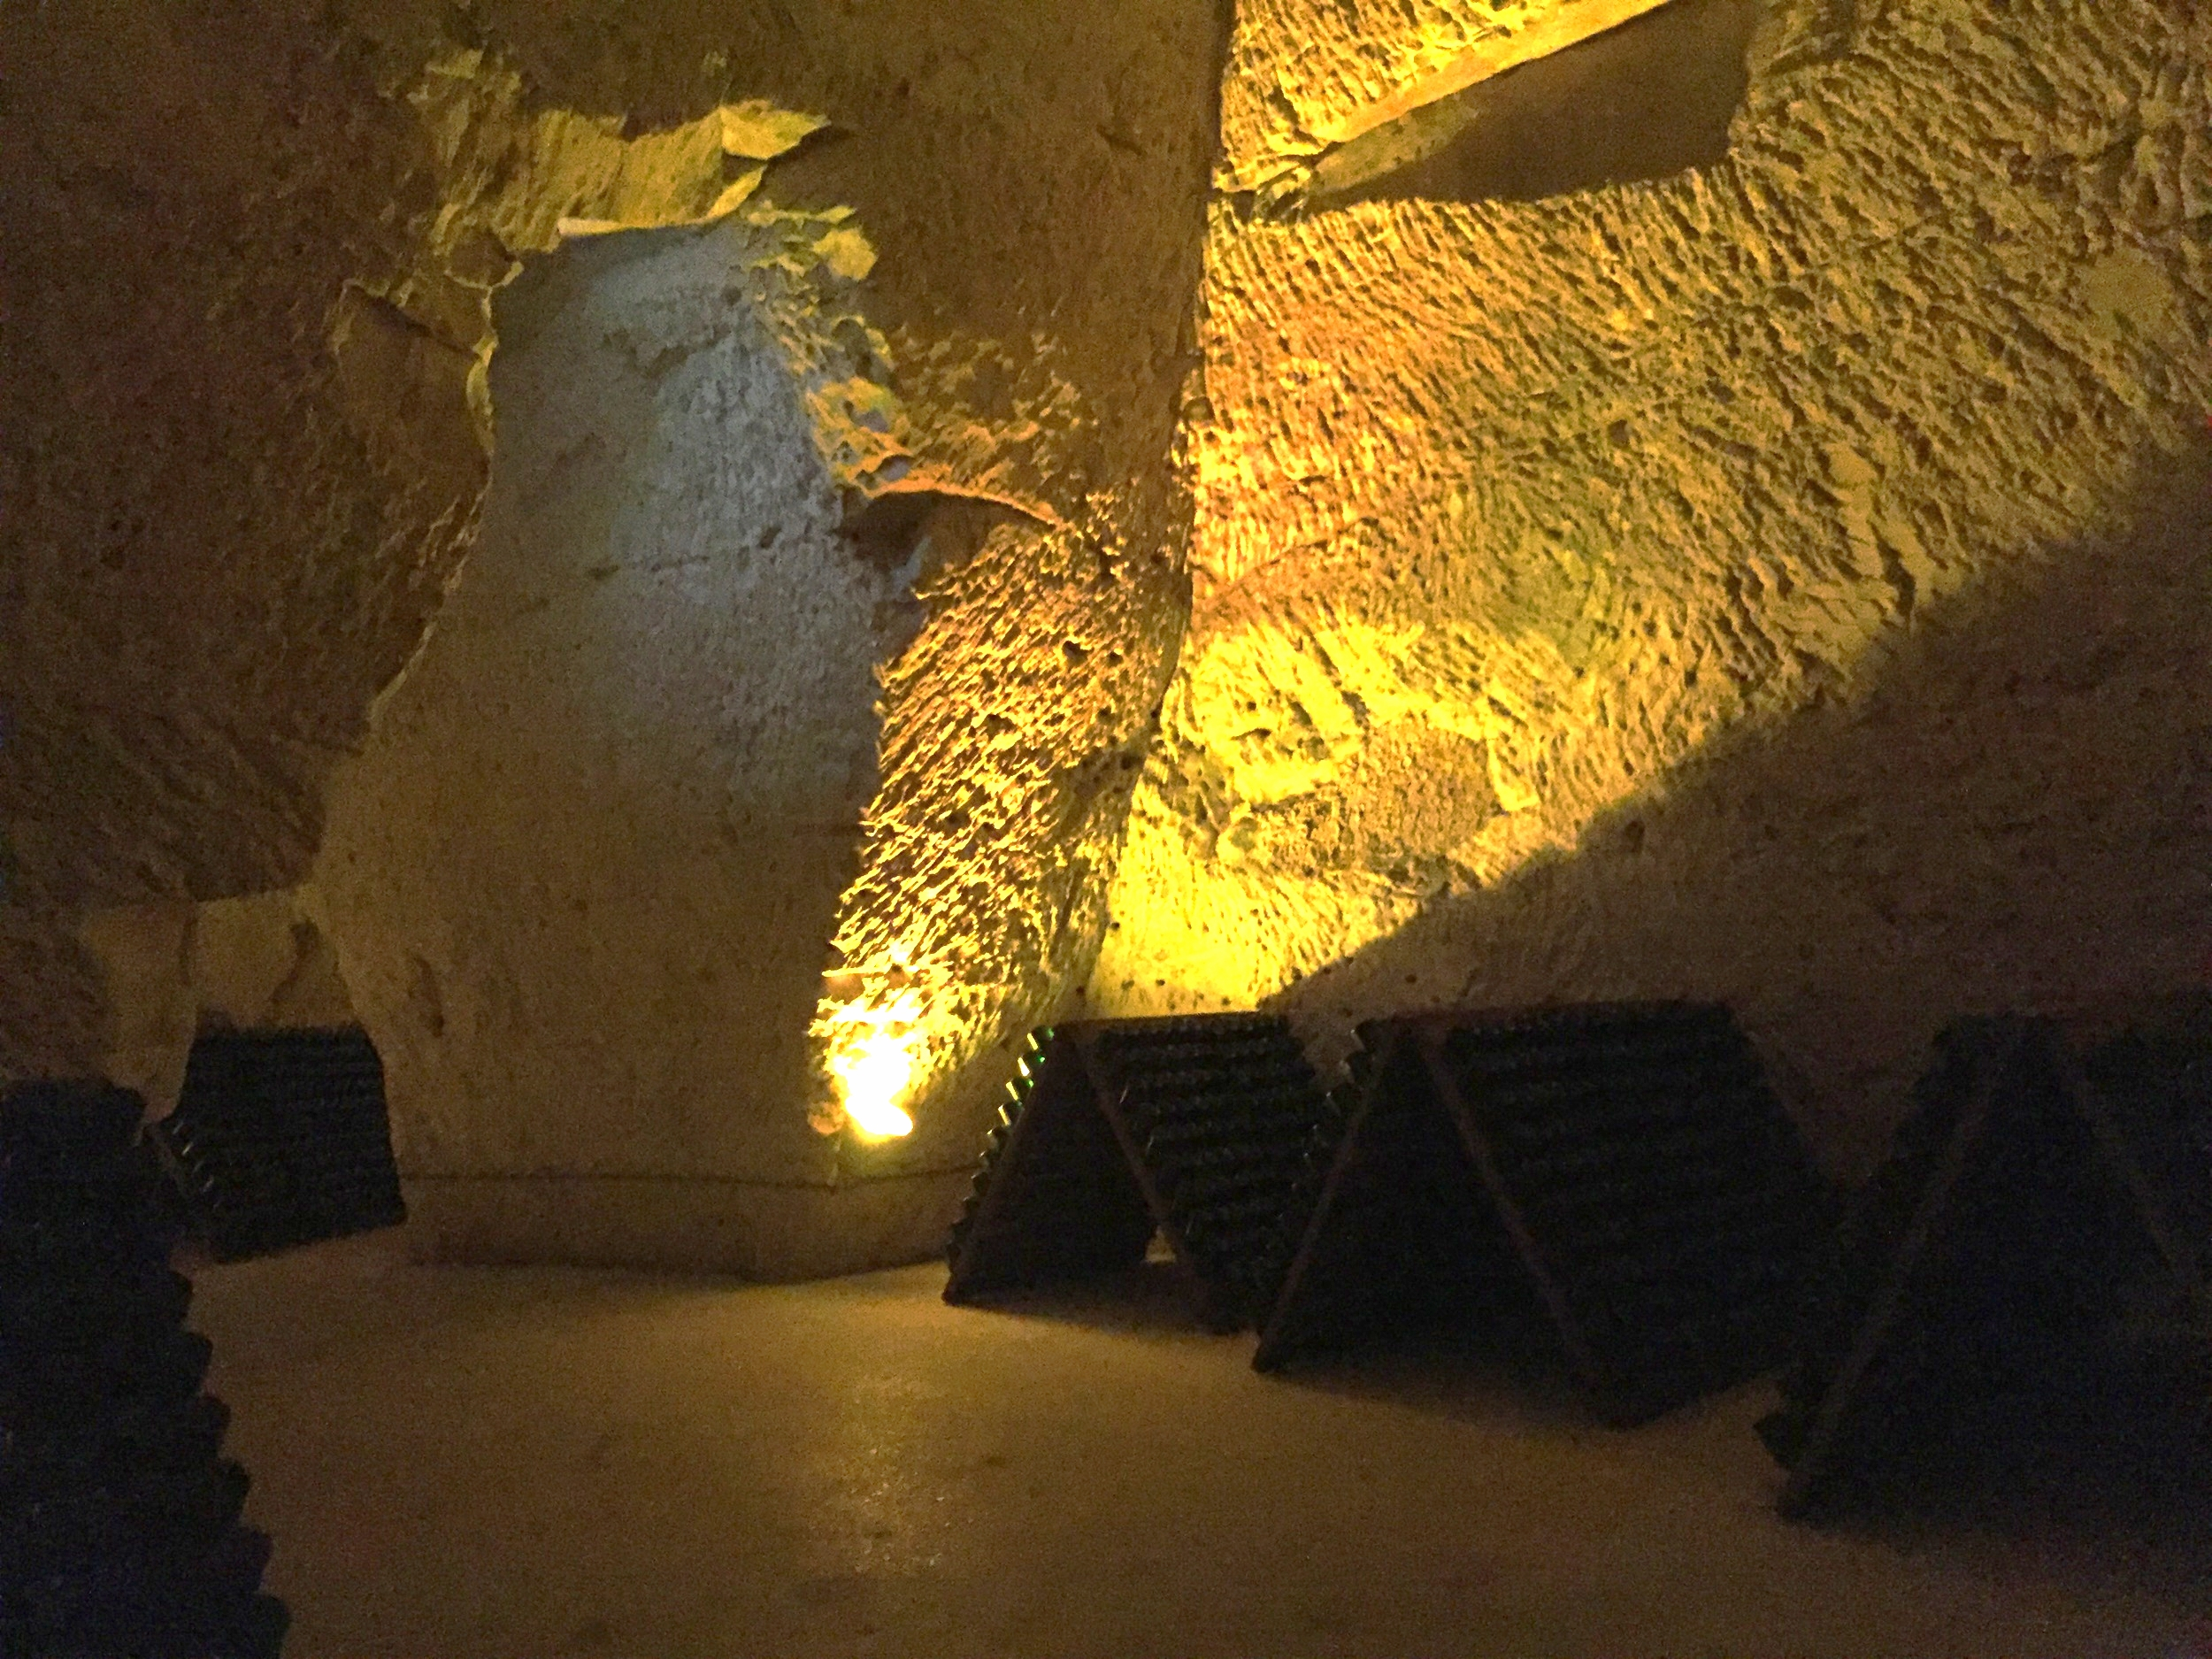 The crayeres, underground cellars at Taittinger that keep the wine at the perfect temperature